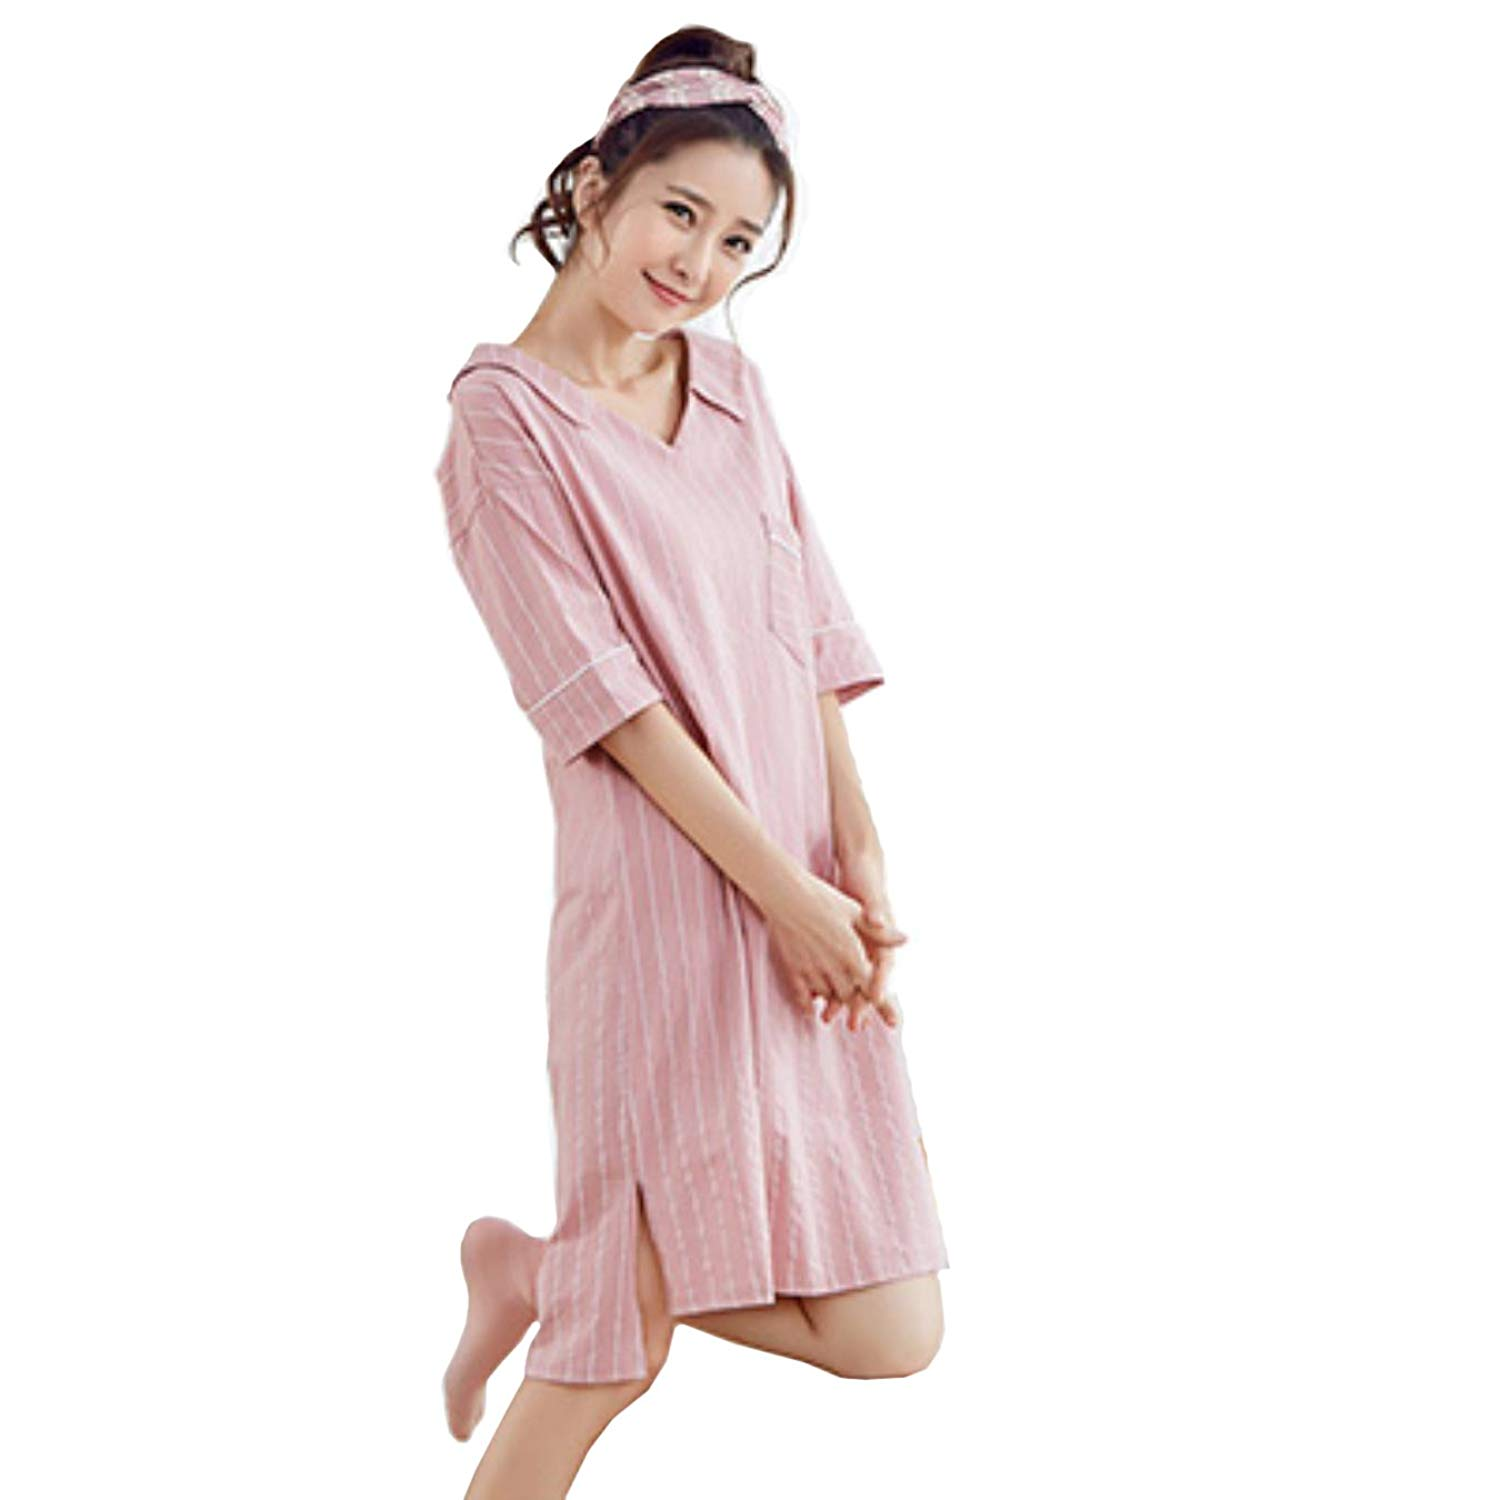 Ladies Incontinence Open Back Floral Hospital Nightdresses Nightie By Lady Olga